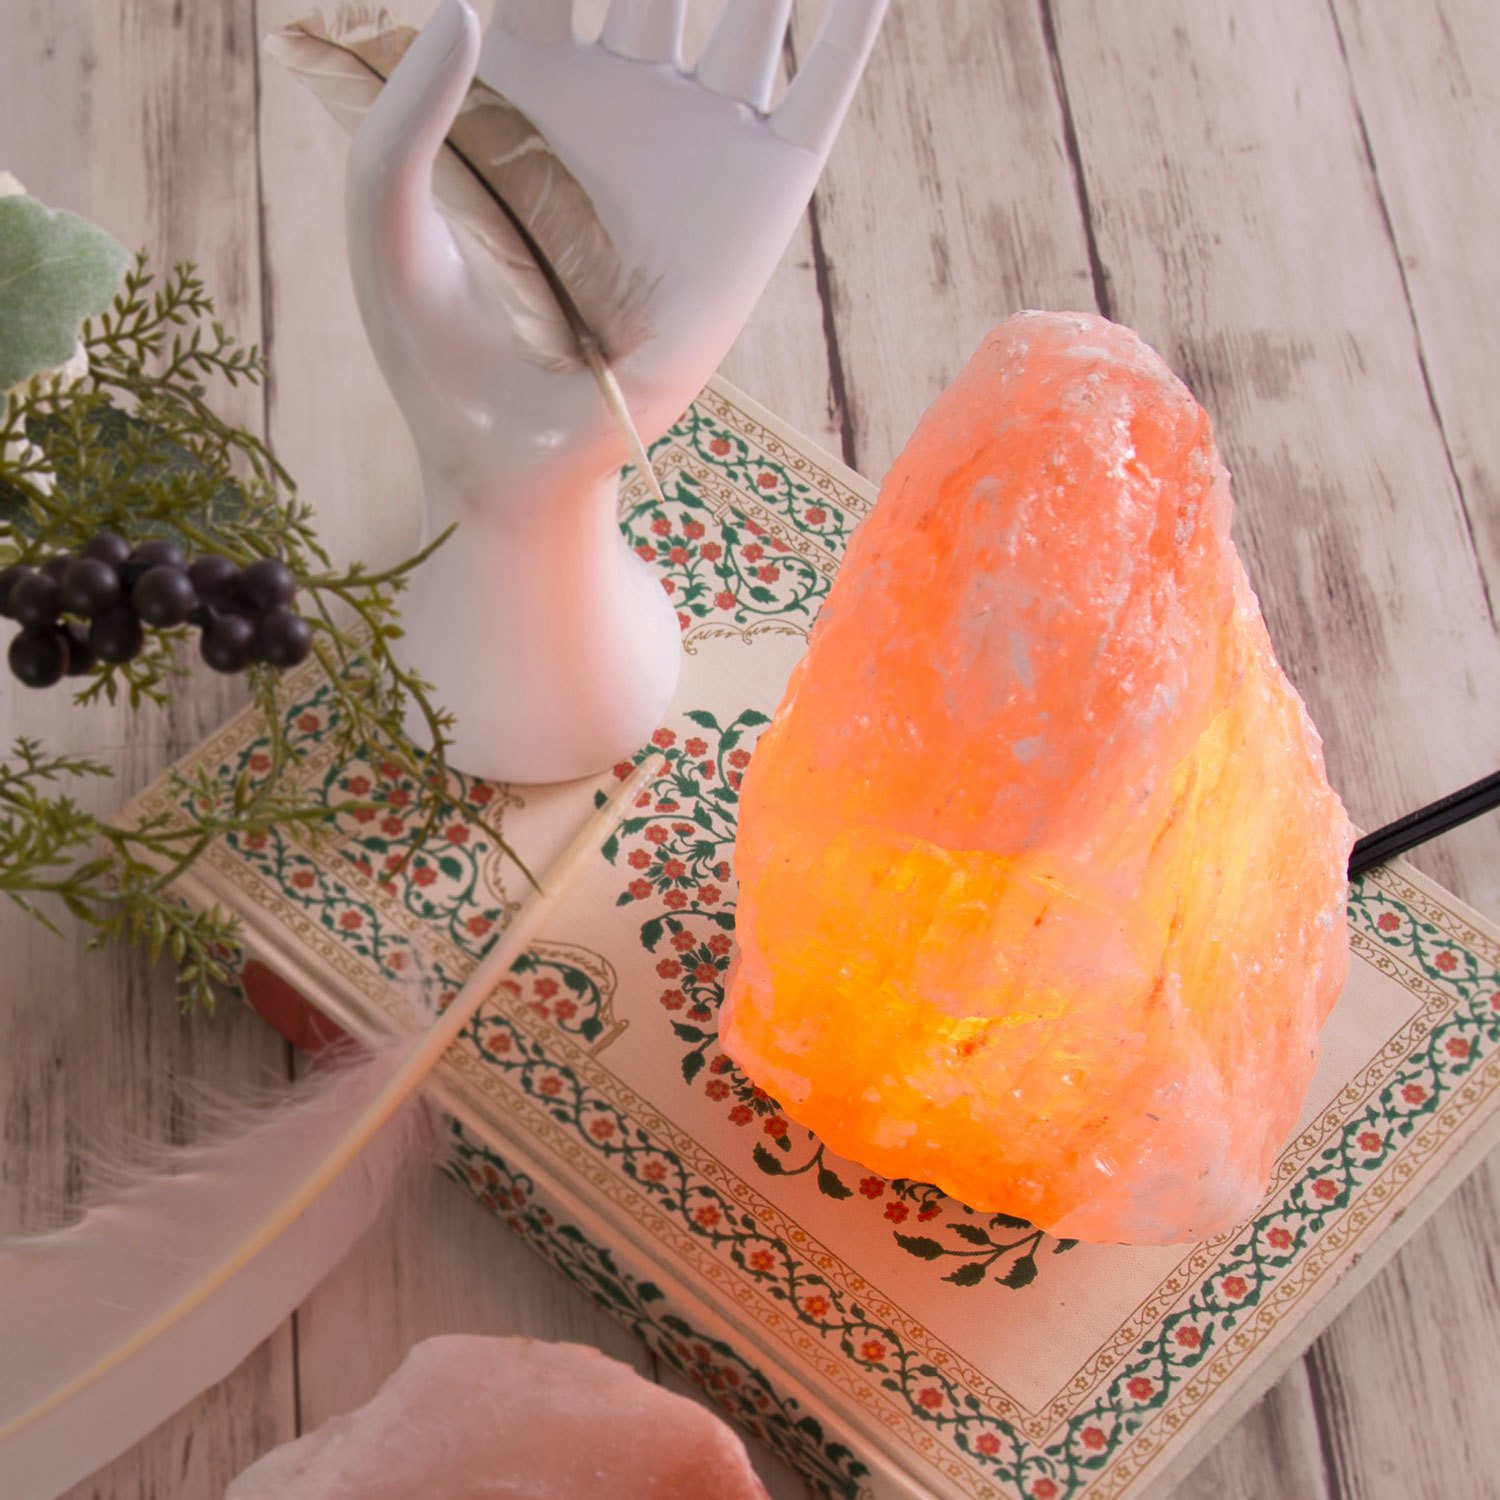 Crystal Allies Natural Himalayan Salt Lamp and 2 Piece Tea Candle Holder Combo with Dimmable Cord and Bulb - Choose Your Design (1 Piece Salt Lamp ~6'') by Crystal Allies Gallery (Image #5)